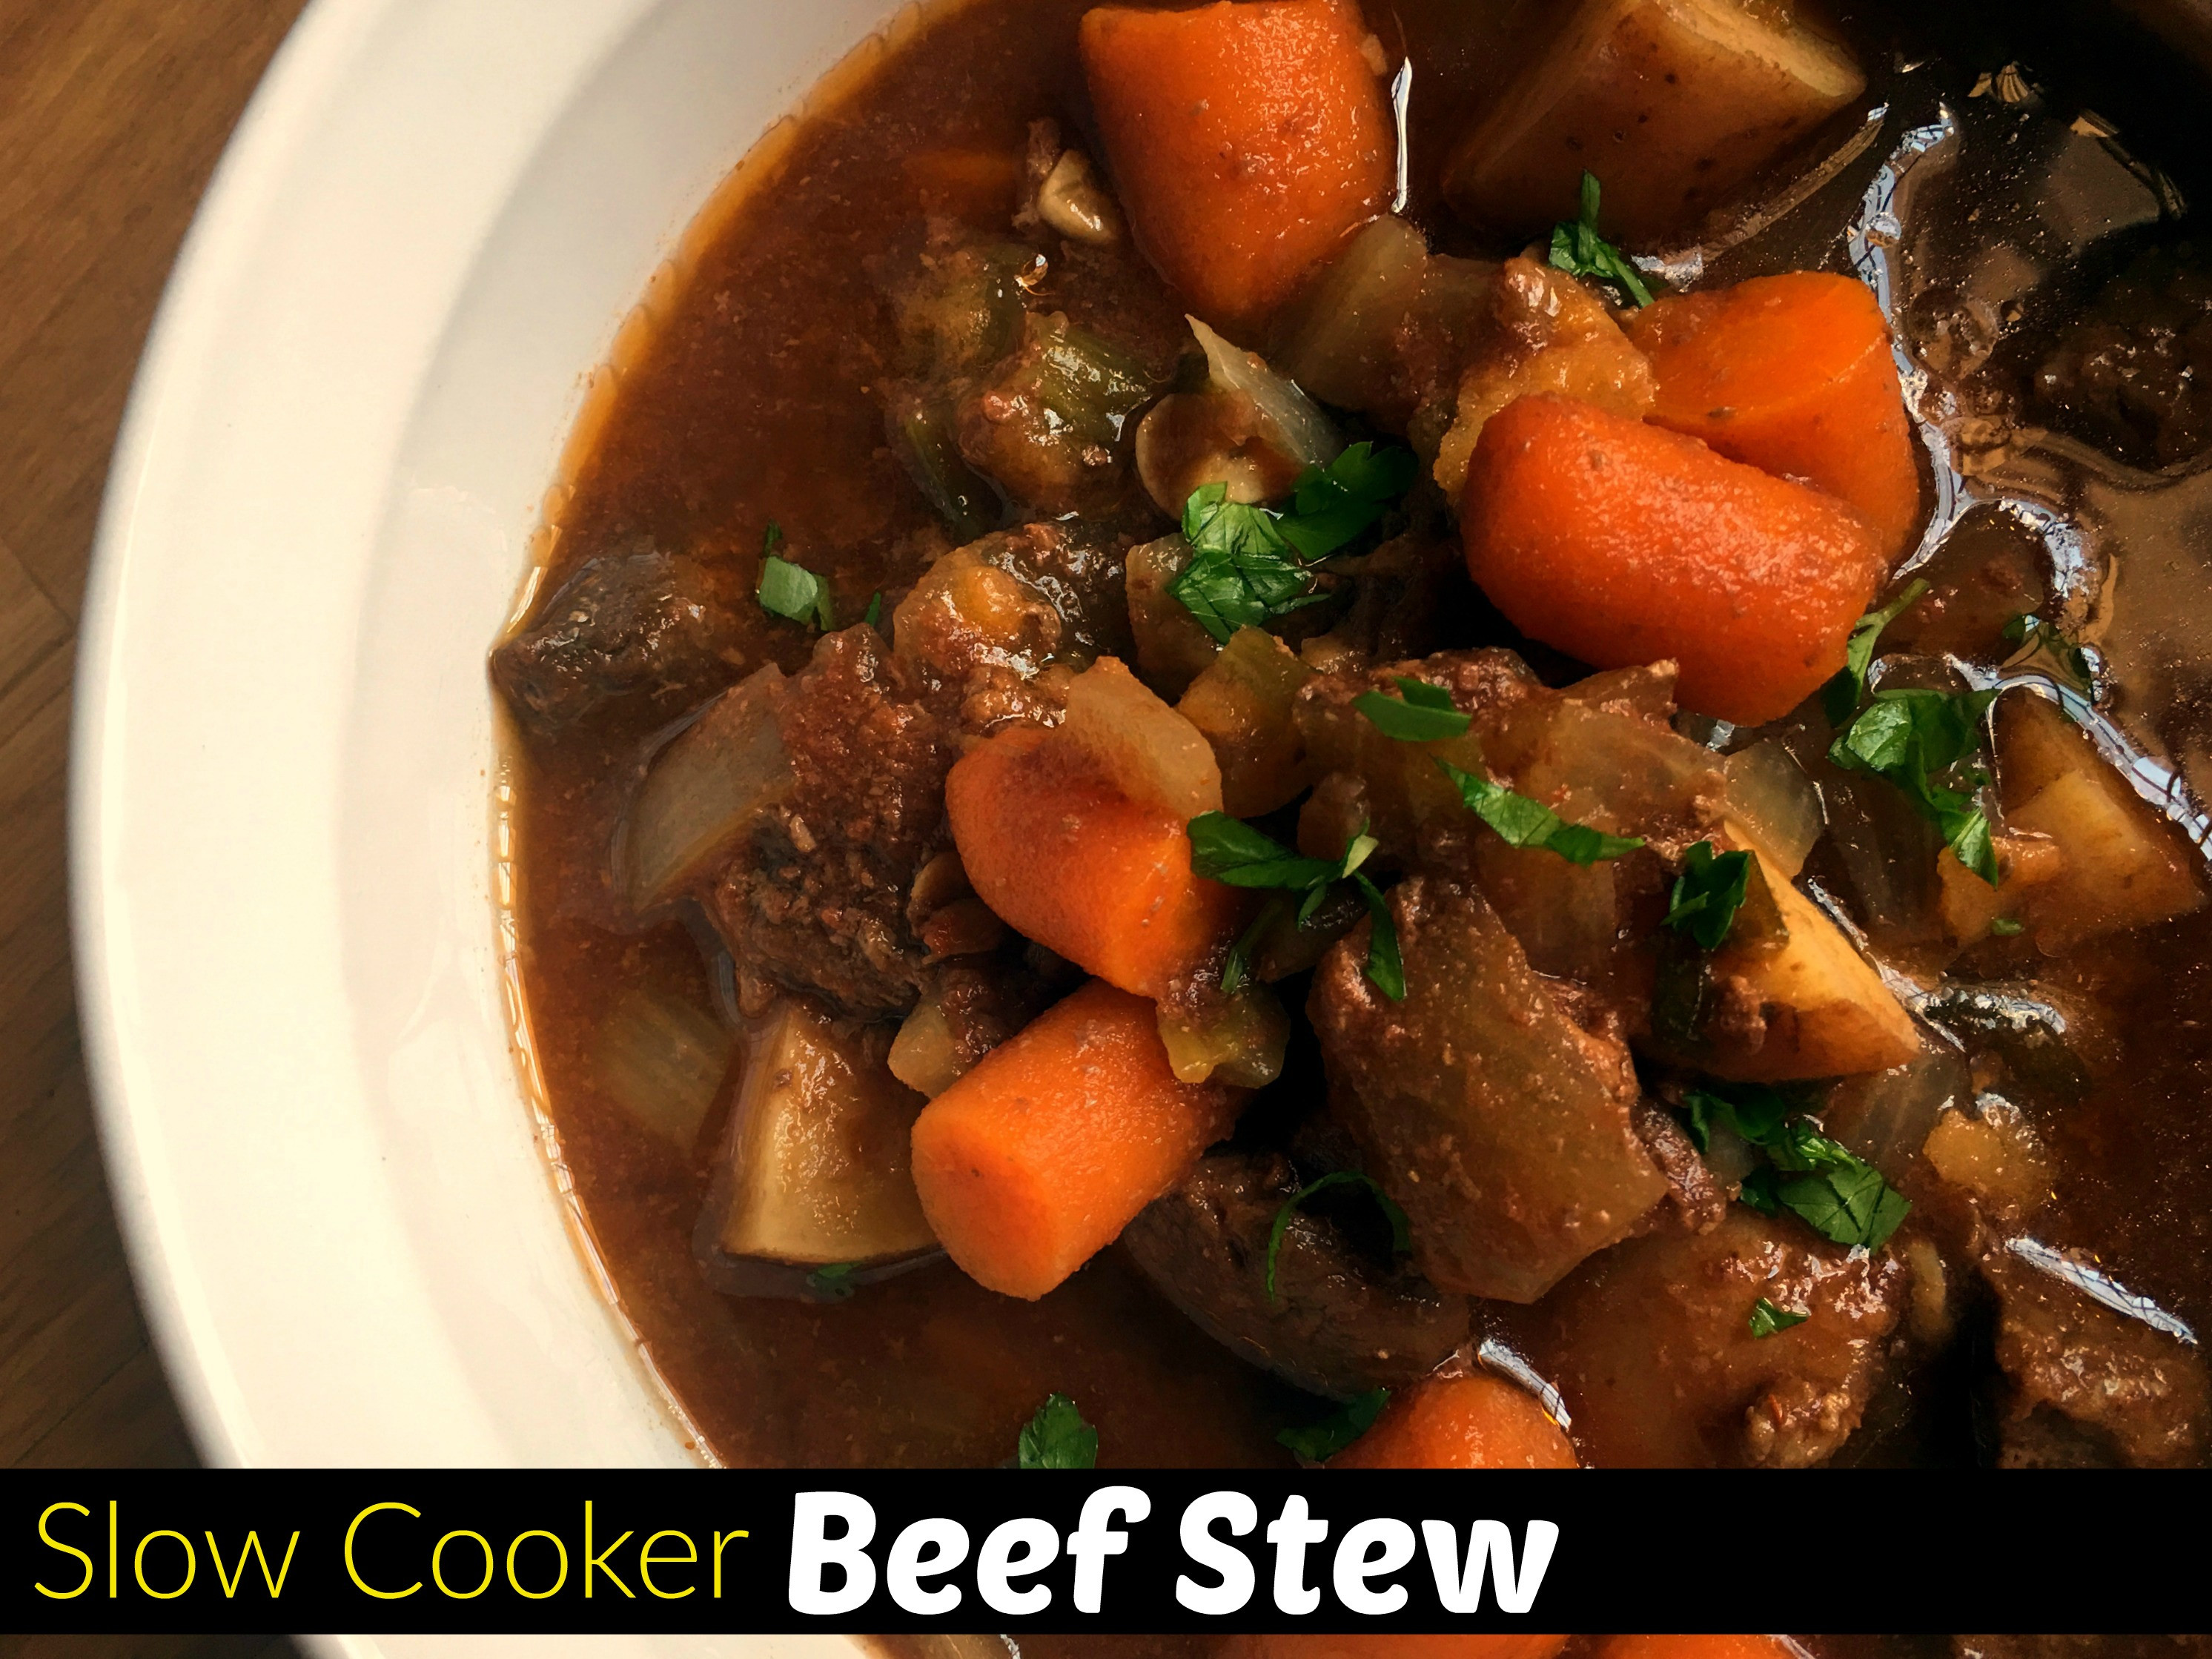 Pork Stew Recipe Slow Cooker  Slow Cooker Beef Stew Aunt Bee s Recipes